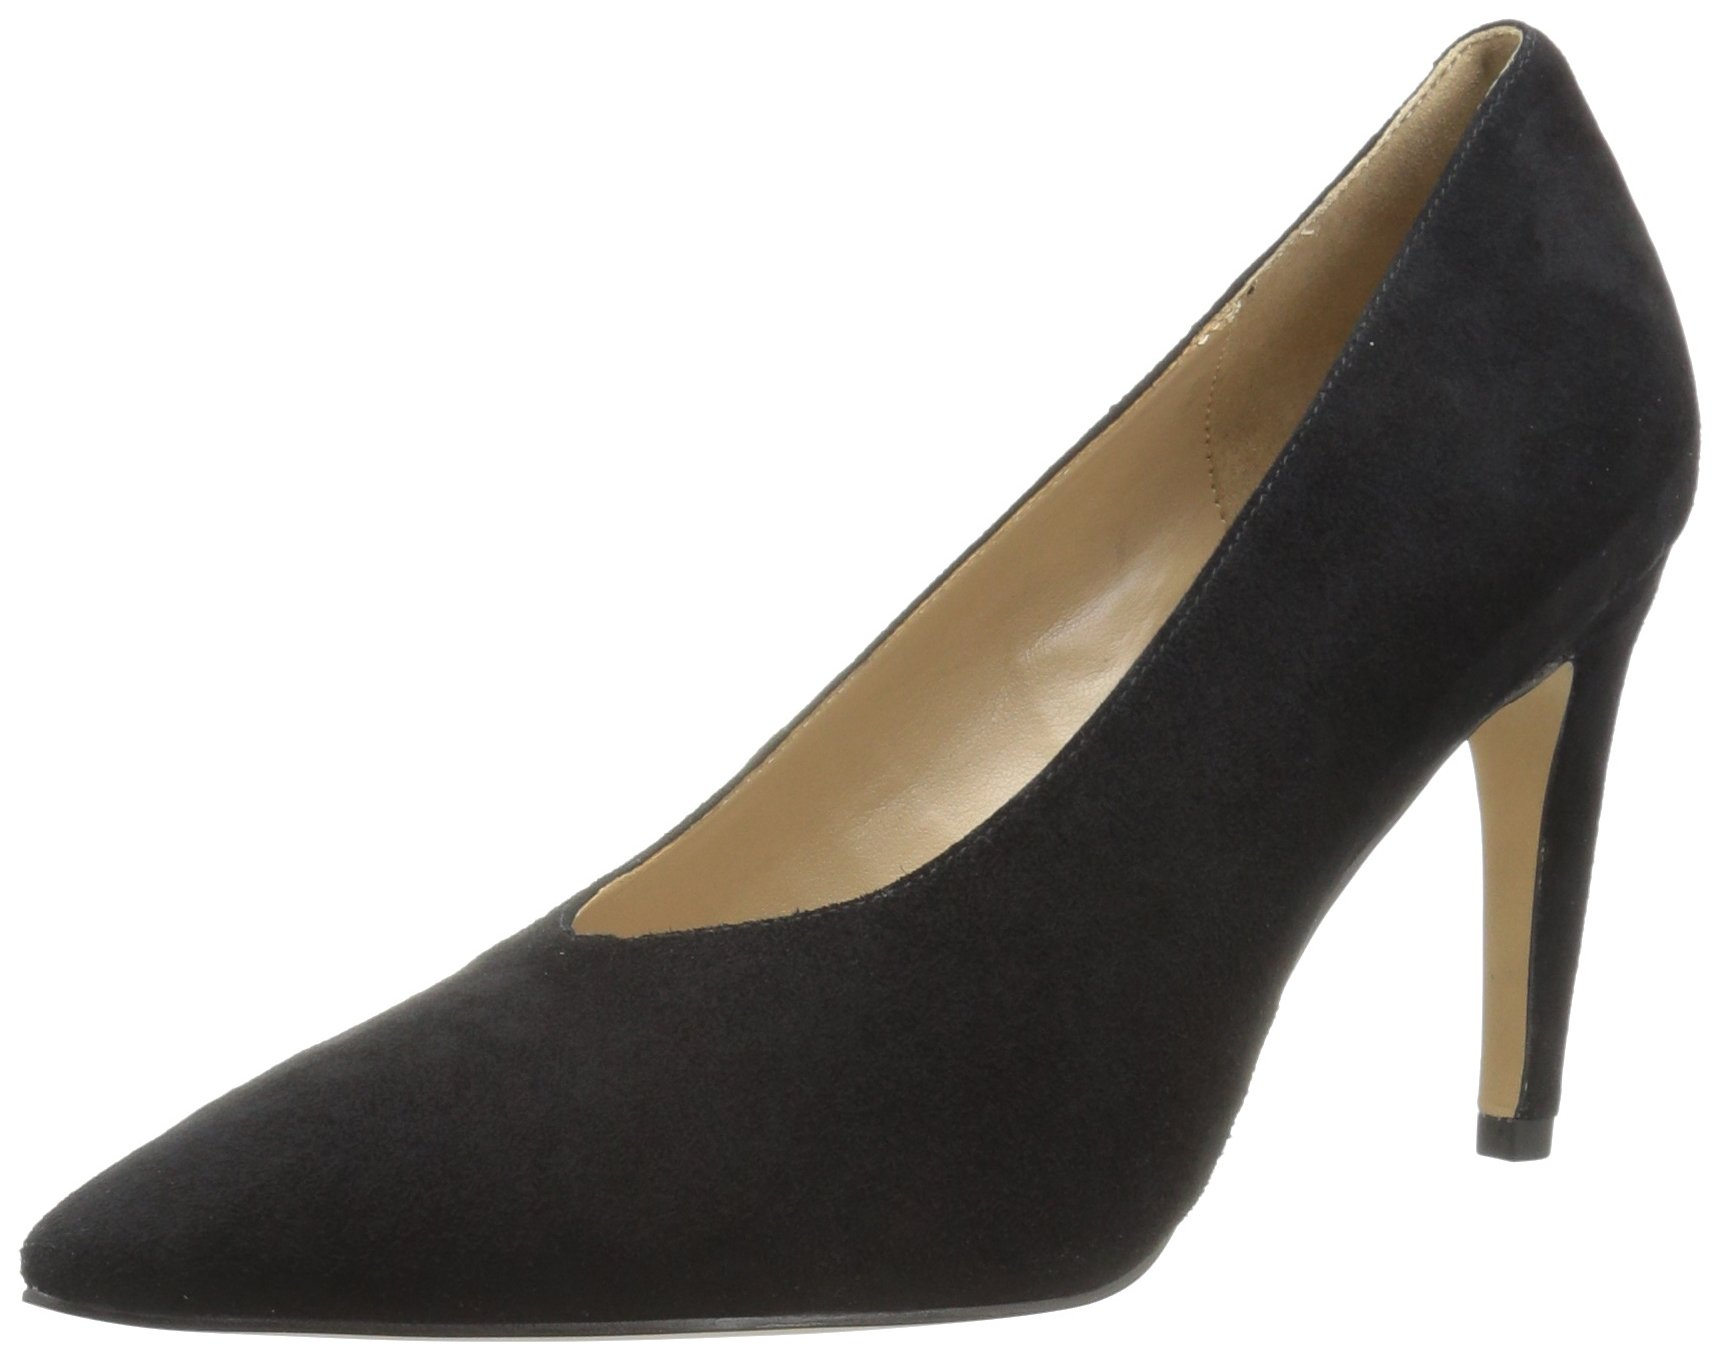 The Fix Women's Vail Choked-up Banana Heel Dress Pump, Black, 7 B US